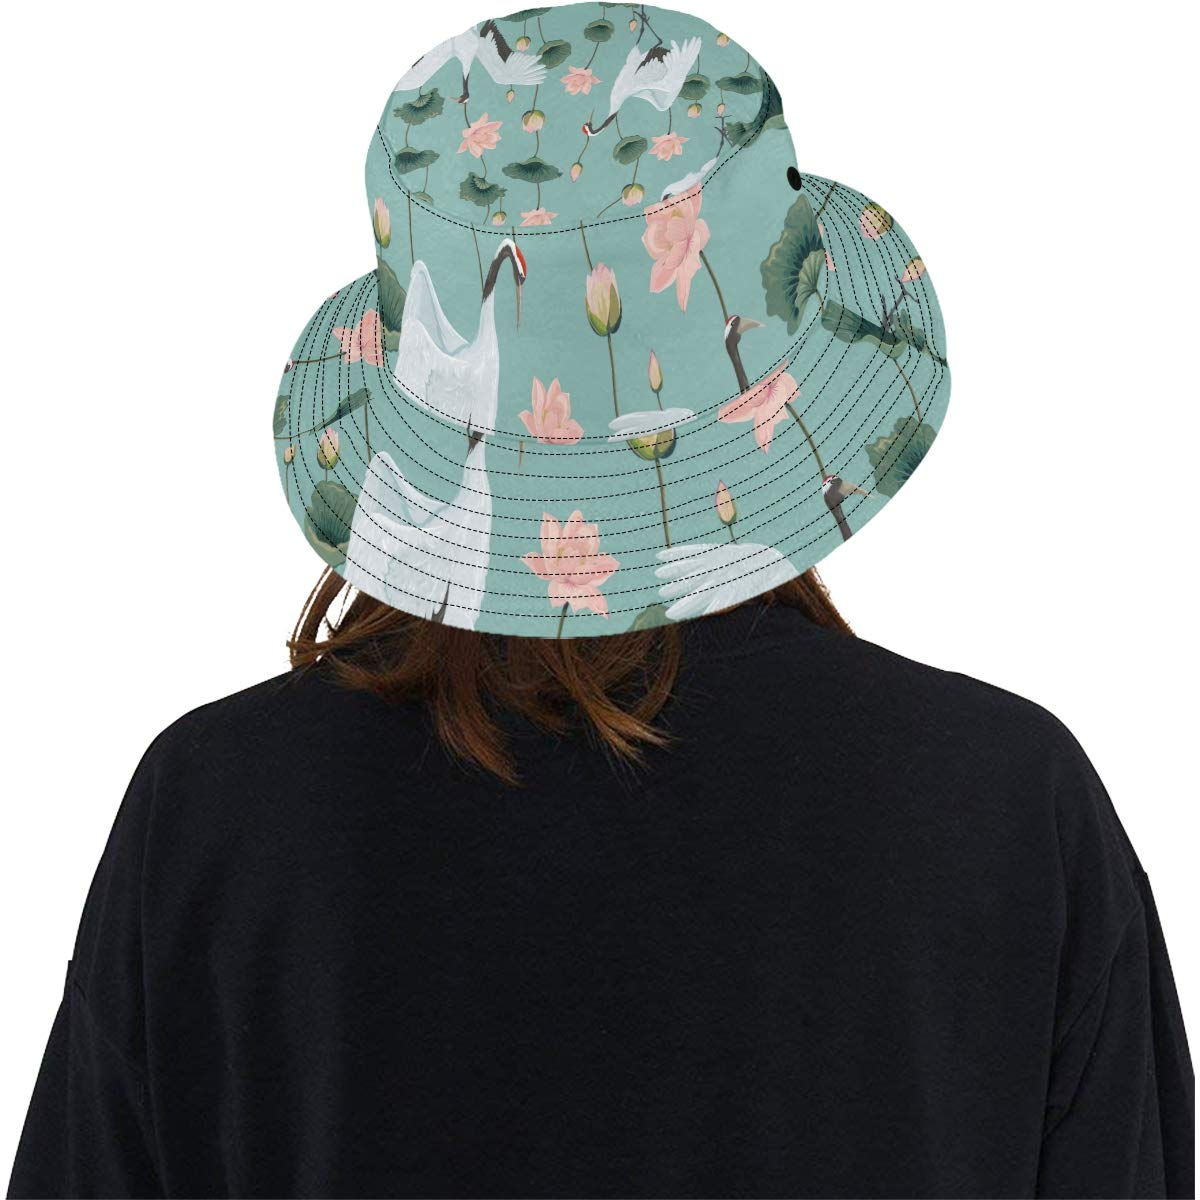 Japanese Style Artistic Cranes New Summer Unisex Cotton Fashion Fishing Sun Bucket Hats for Kid Teens Women and Men with Customize Top Packable Fisherman Cap for Outdoor Travel